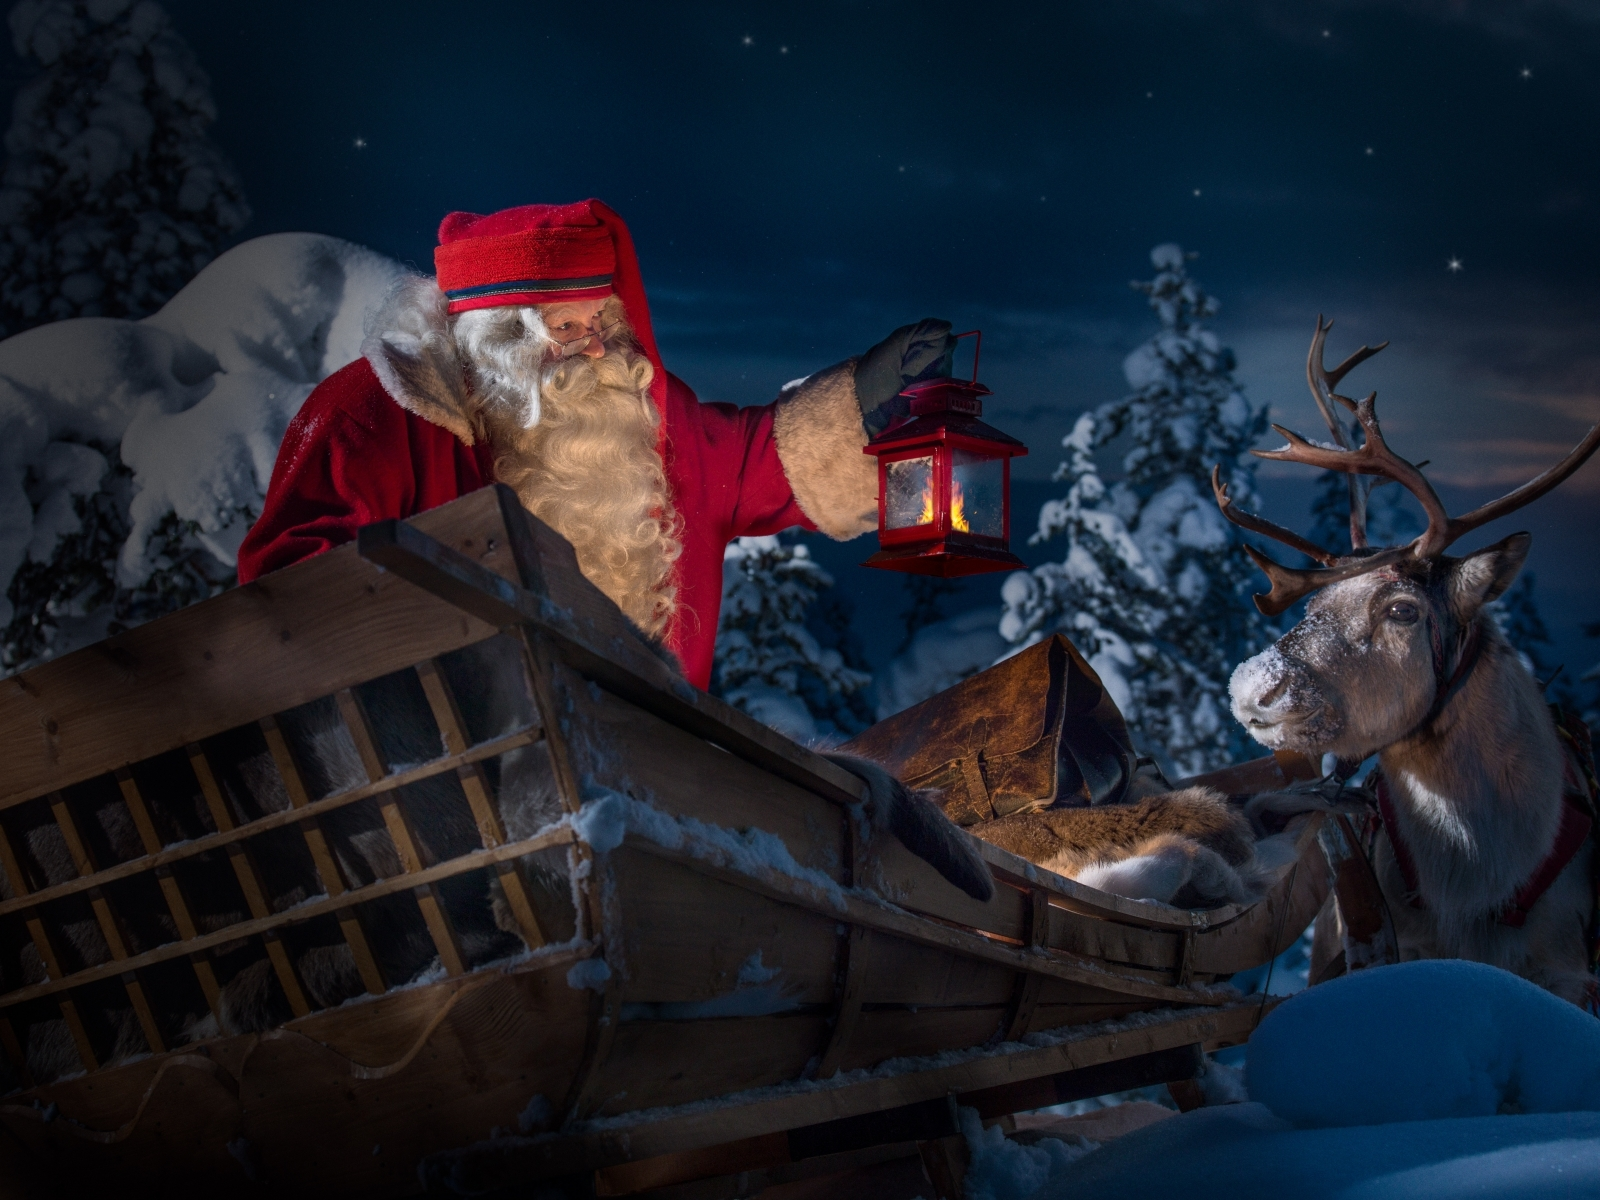 Coming On Christmas Eve: The Santa Tracker